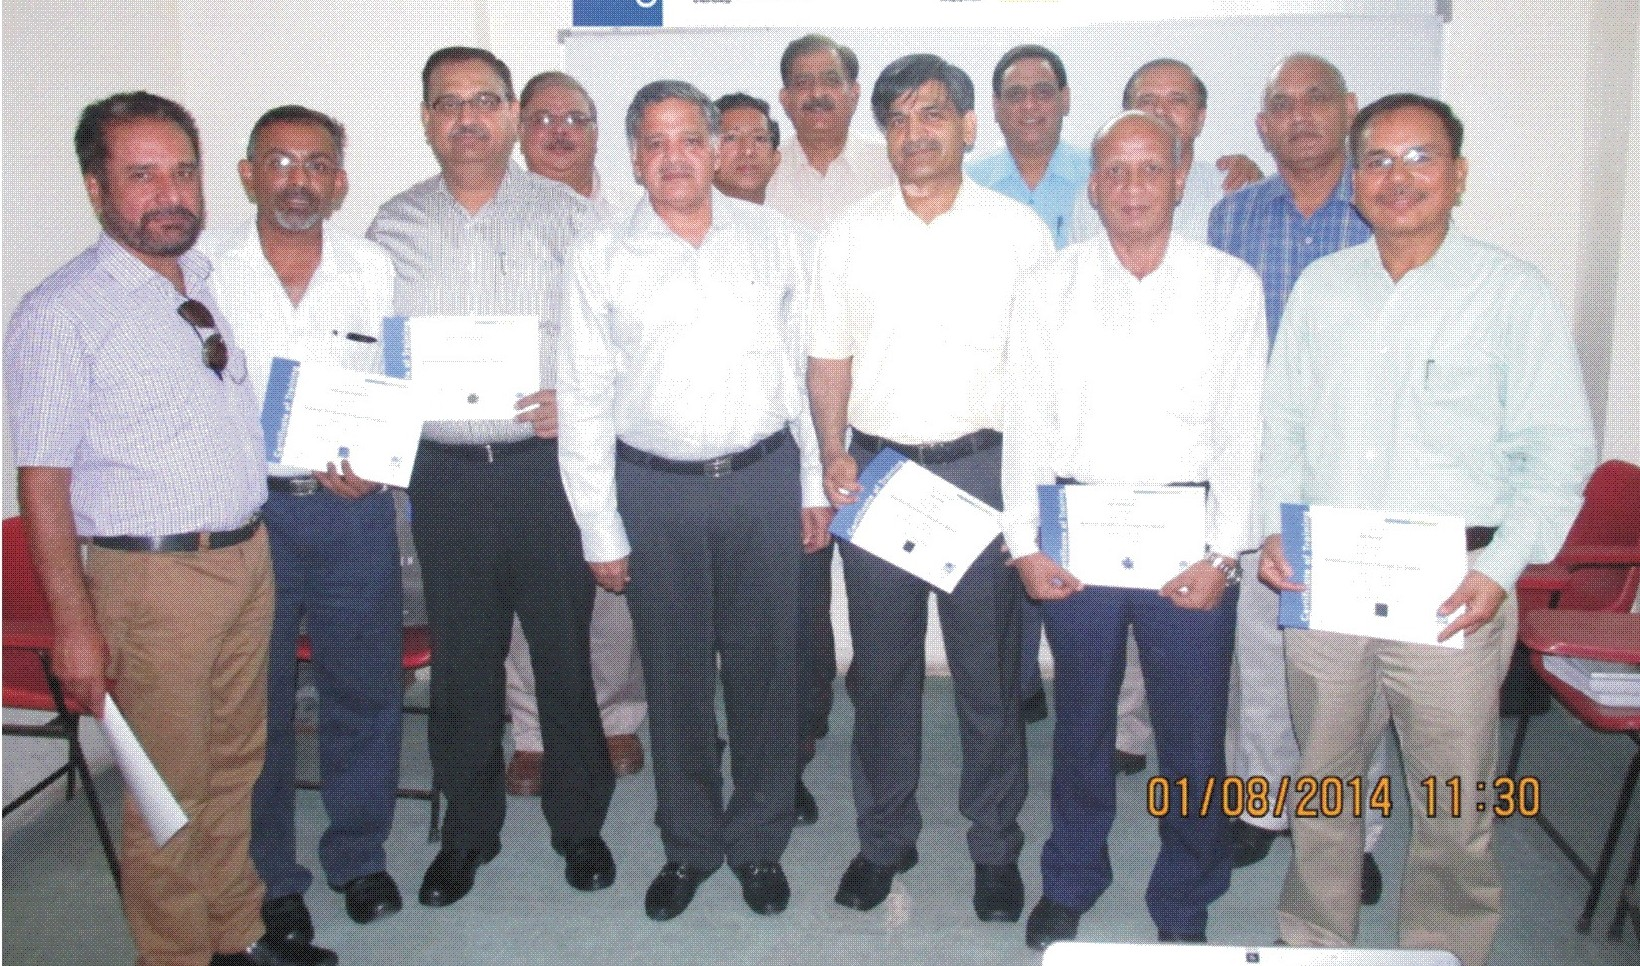 Officers with their ASQ certificates (L-R: Col HS Grewal, Col A Agnihotri, Col V Lalchandani, Col V Mishra, Maj Gen (Dr) BS Yadav (CEO, Q-Tech Synergy), Mr  C James (Instructor, ASQ), Col K Singh, Brig JK Sethi, Col SS Randhawa,  Brig RG Goswami,... 			